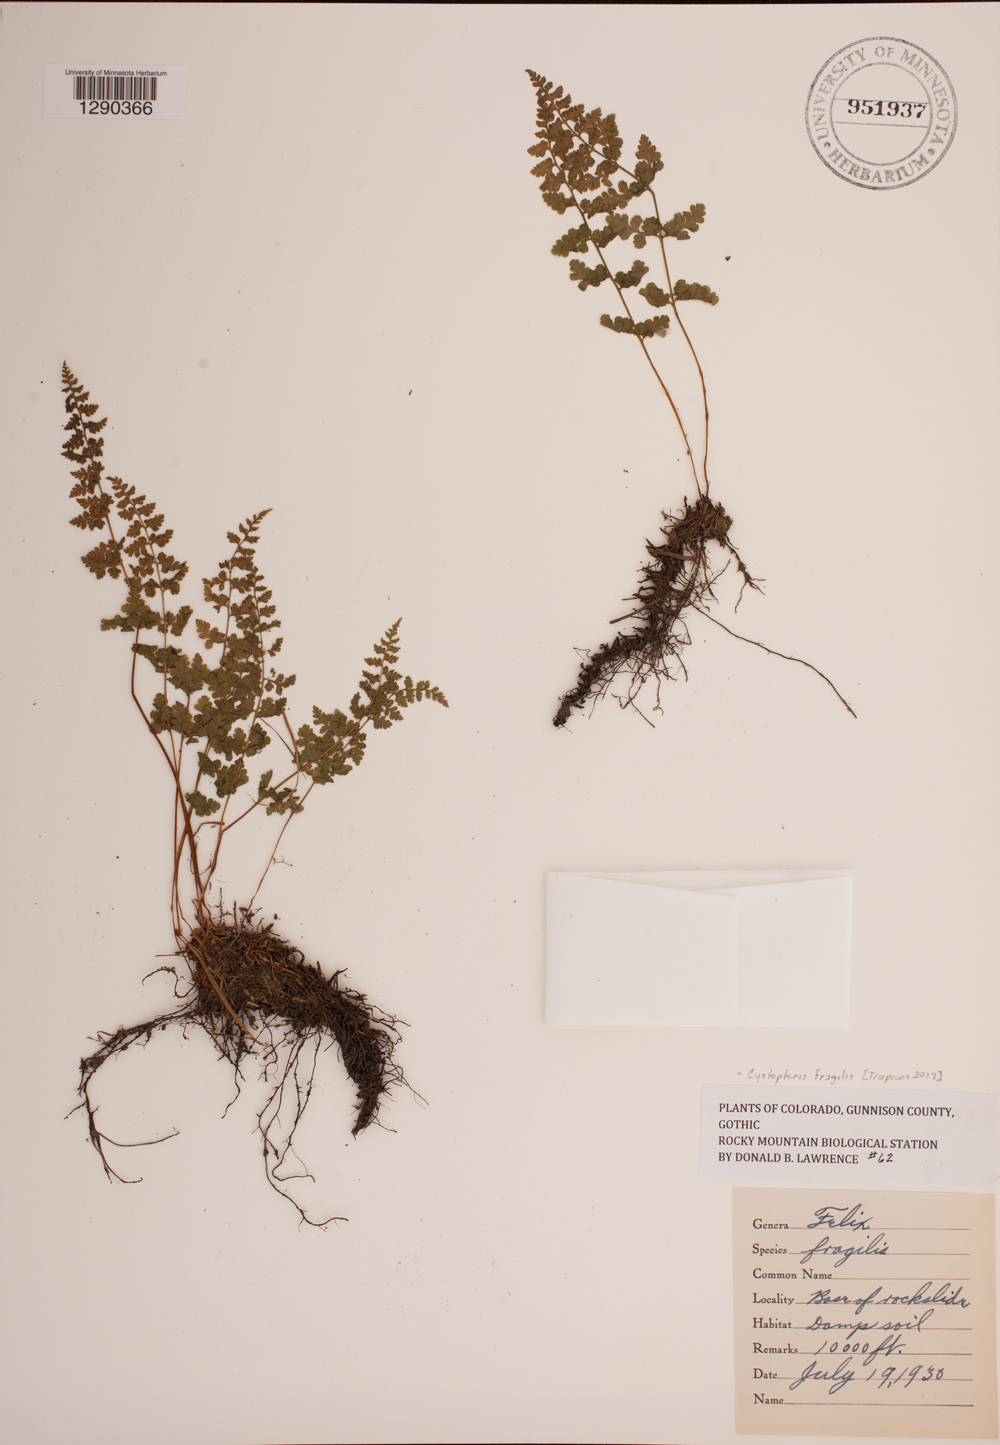 A brittle bladder fern specimen from our plant collection